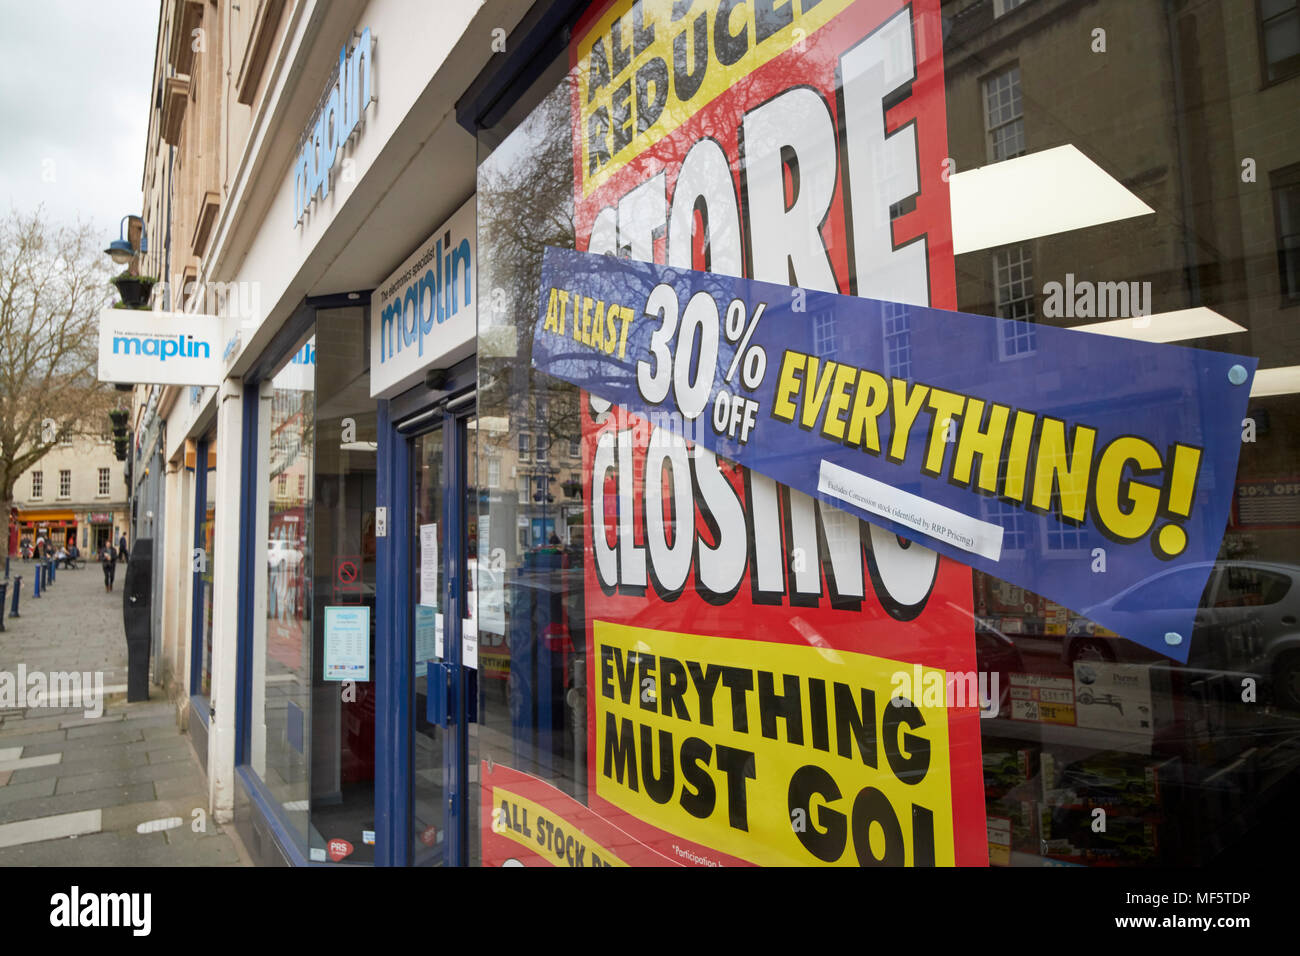 maplin shop store closing with reductions signs in the window Bath Somerset England UK - Stock Image